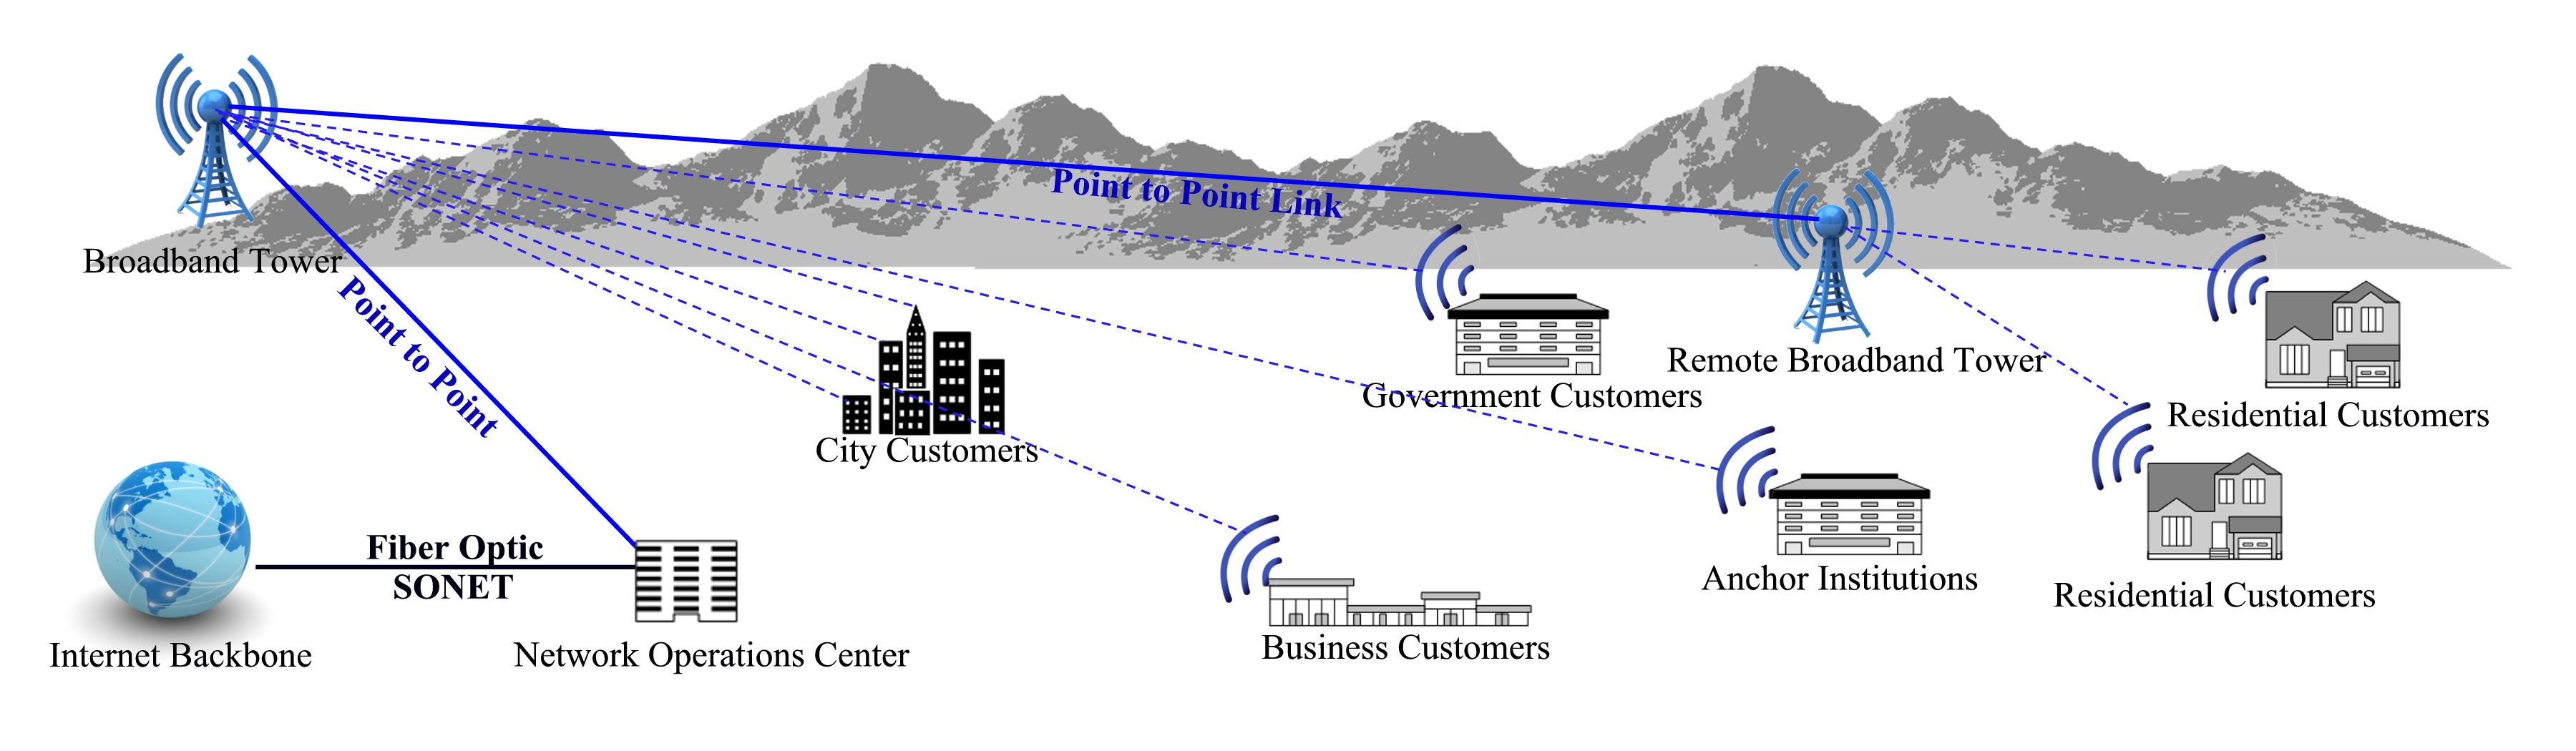 Fixed Wireless Hudson Valley Help Center A Diagram For Business Access To Your Home Or High Gain Antenna Is Placed Near The Roof And Aimed Towards One Of Our Towers Relay Sites Deliver